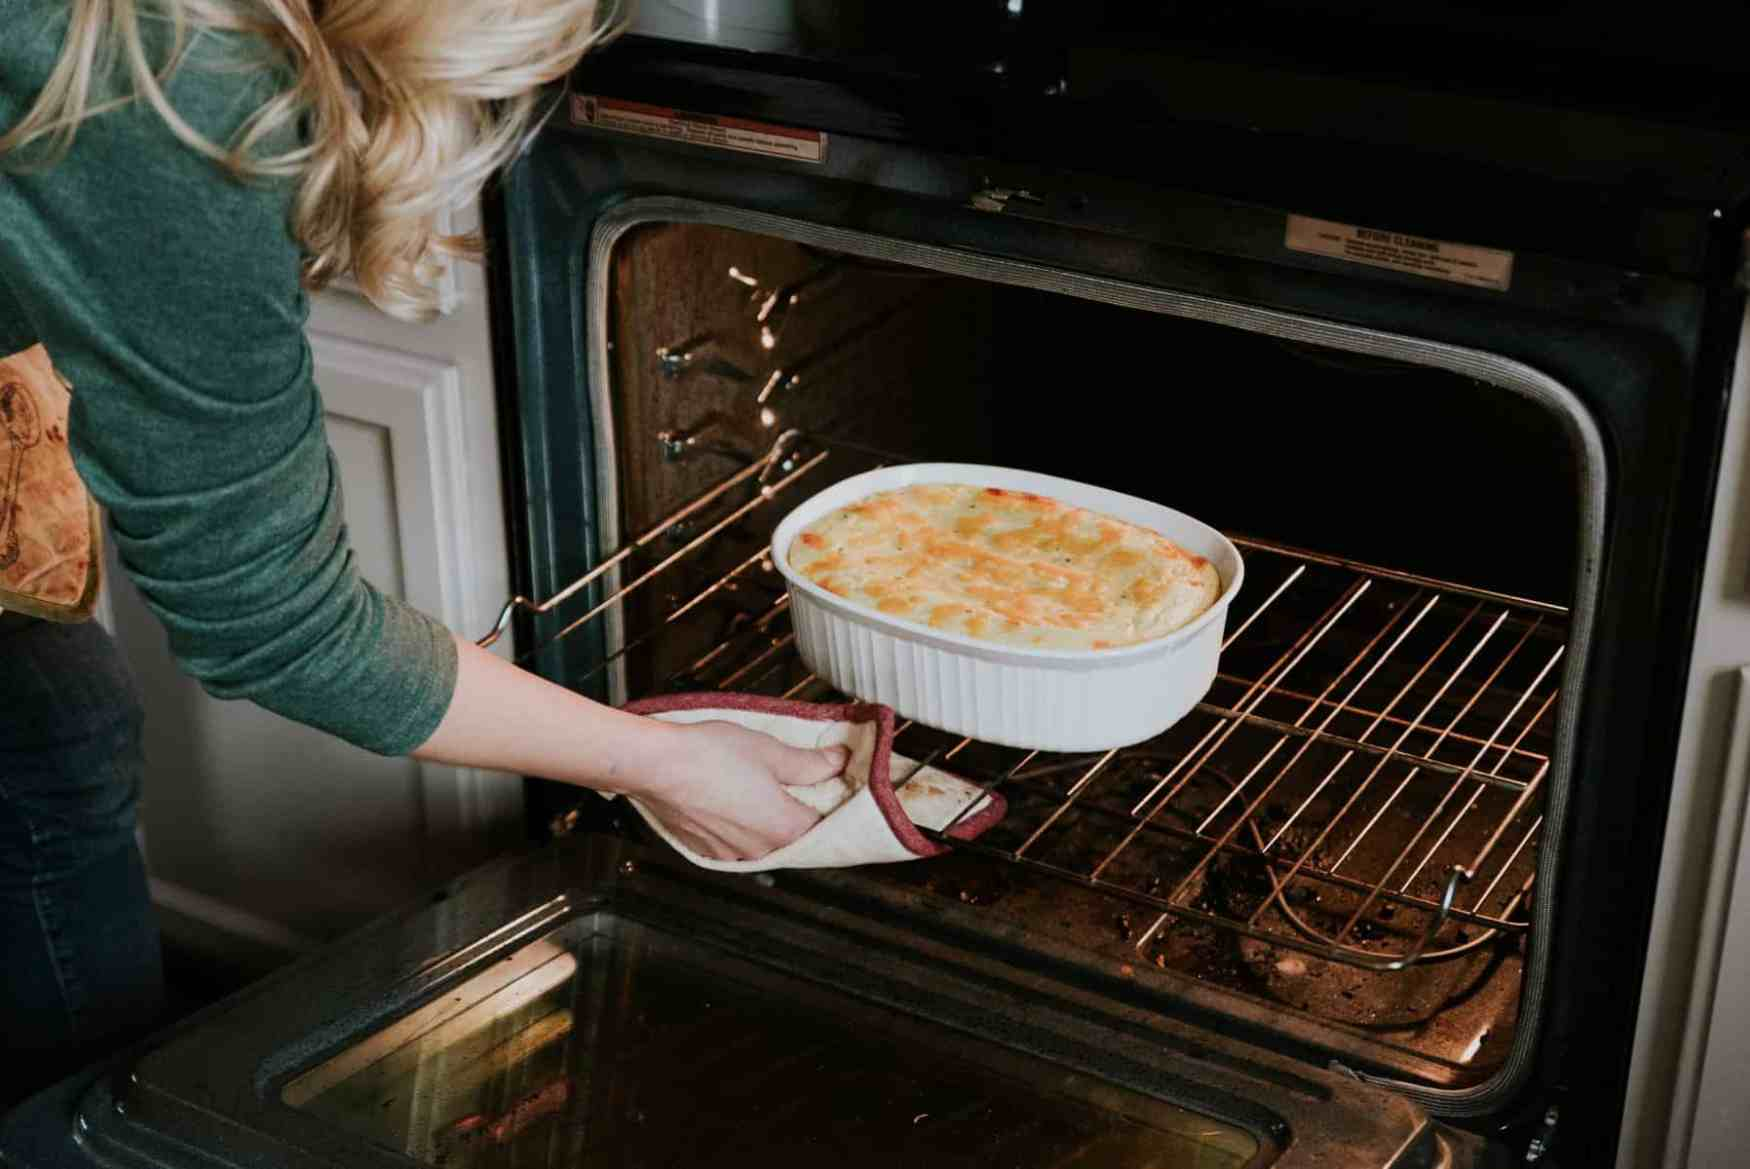 Pulling the mashed potato casserole out of the oven.